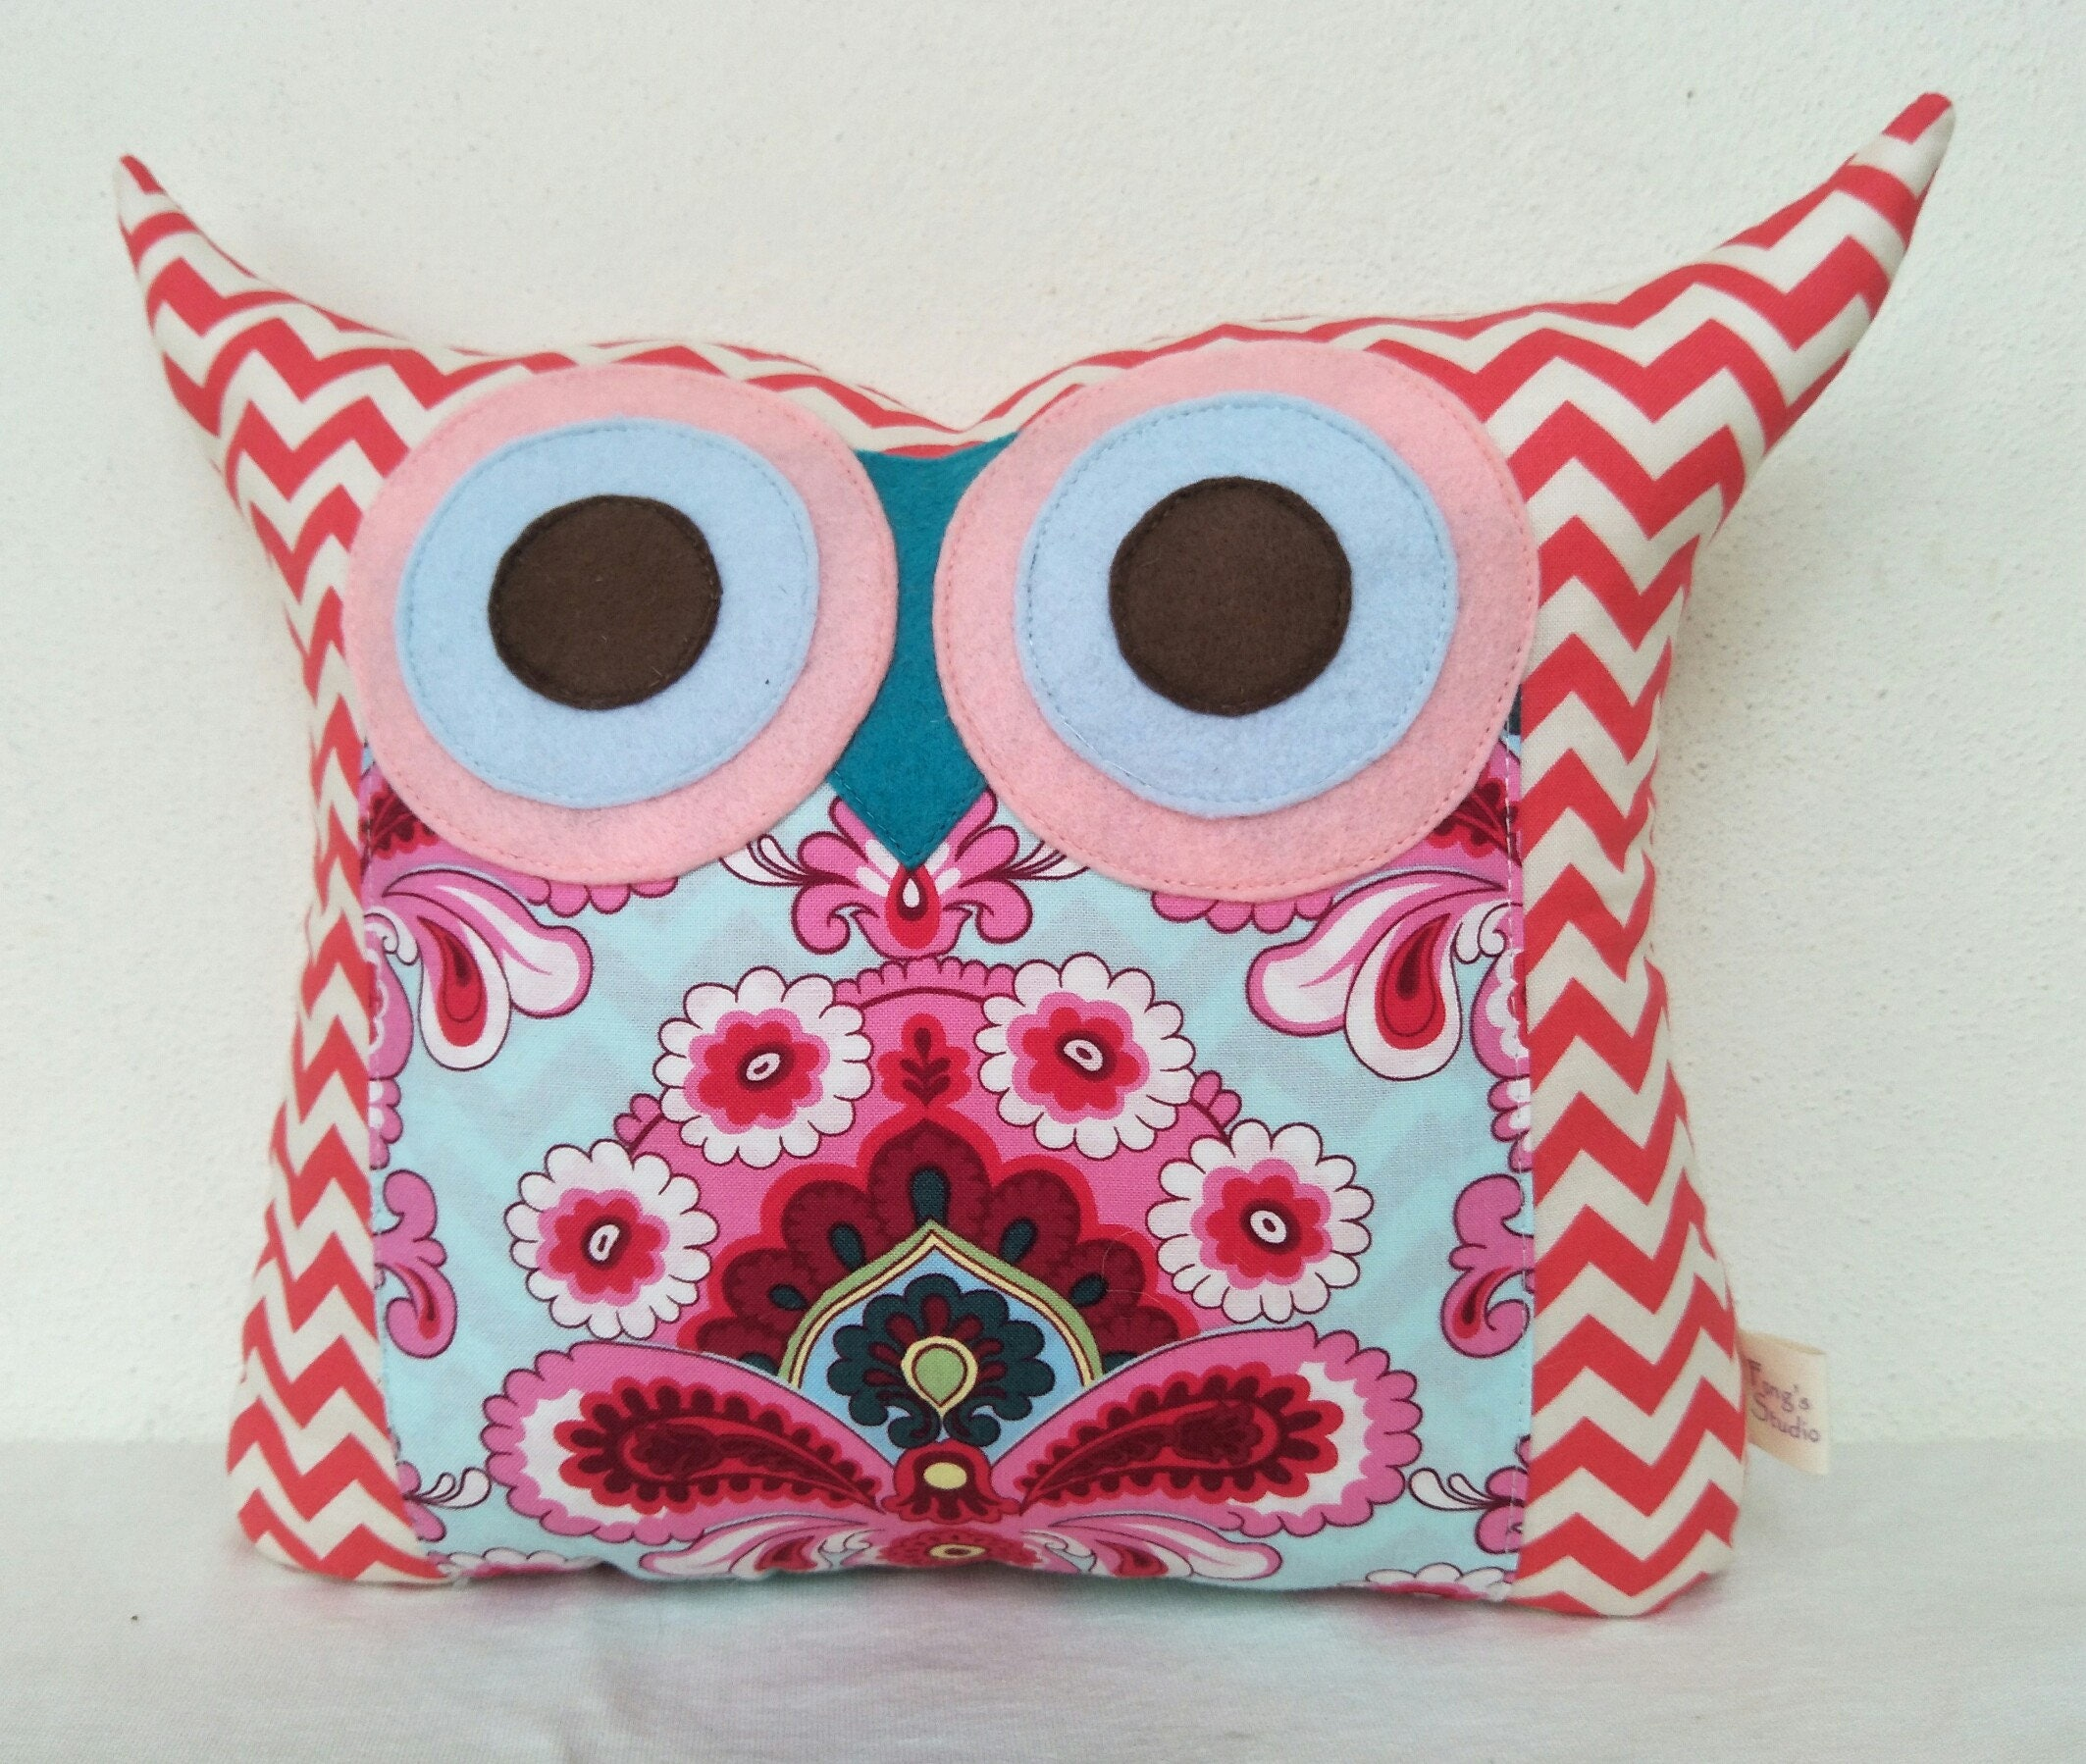 Discount 16% /pink owl pillow/ Amy Butler French Wallpaper out